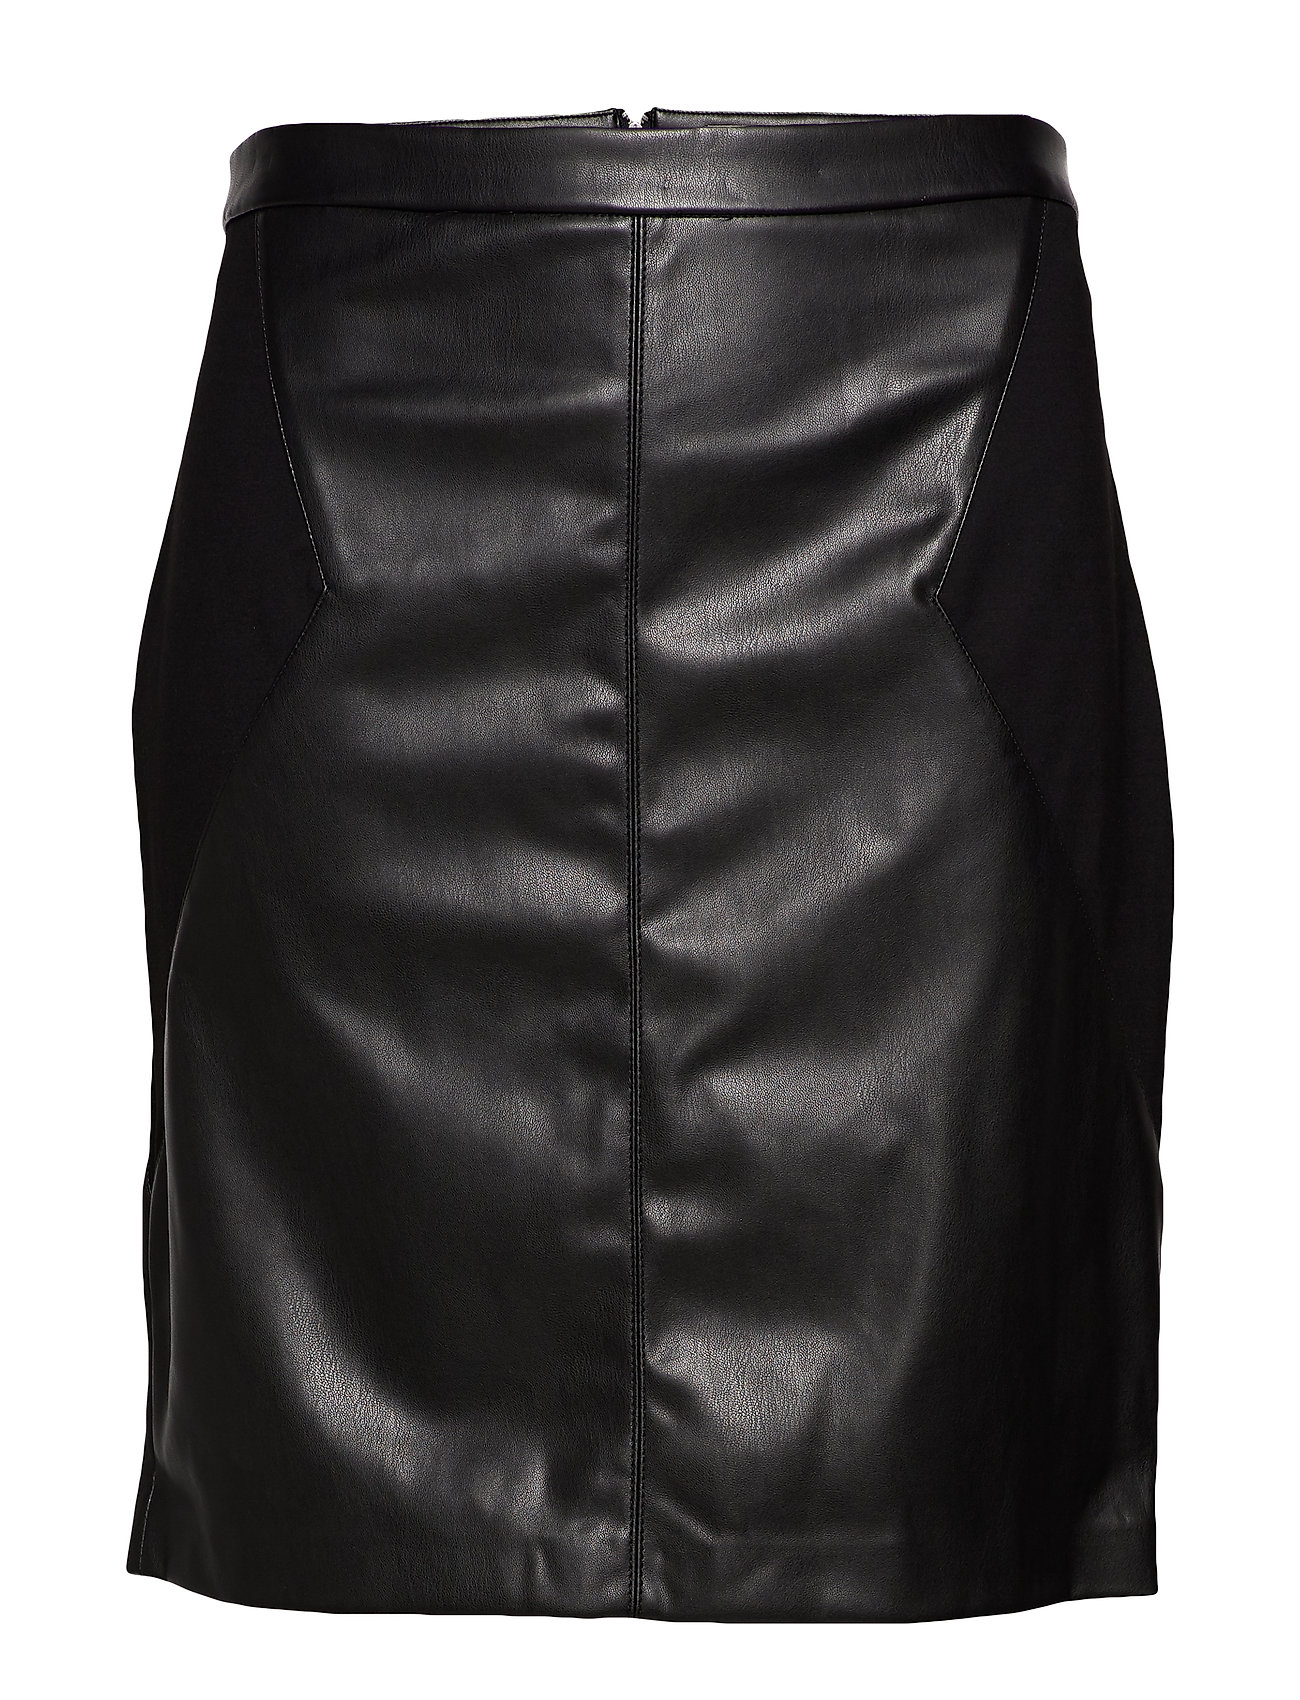 Image of Carbea Faux Leather Mix Pencil Skirt Kort Nederdel Sort ONLY Carmakoma (3264524881)